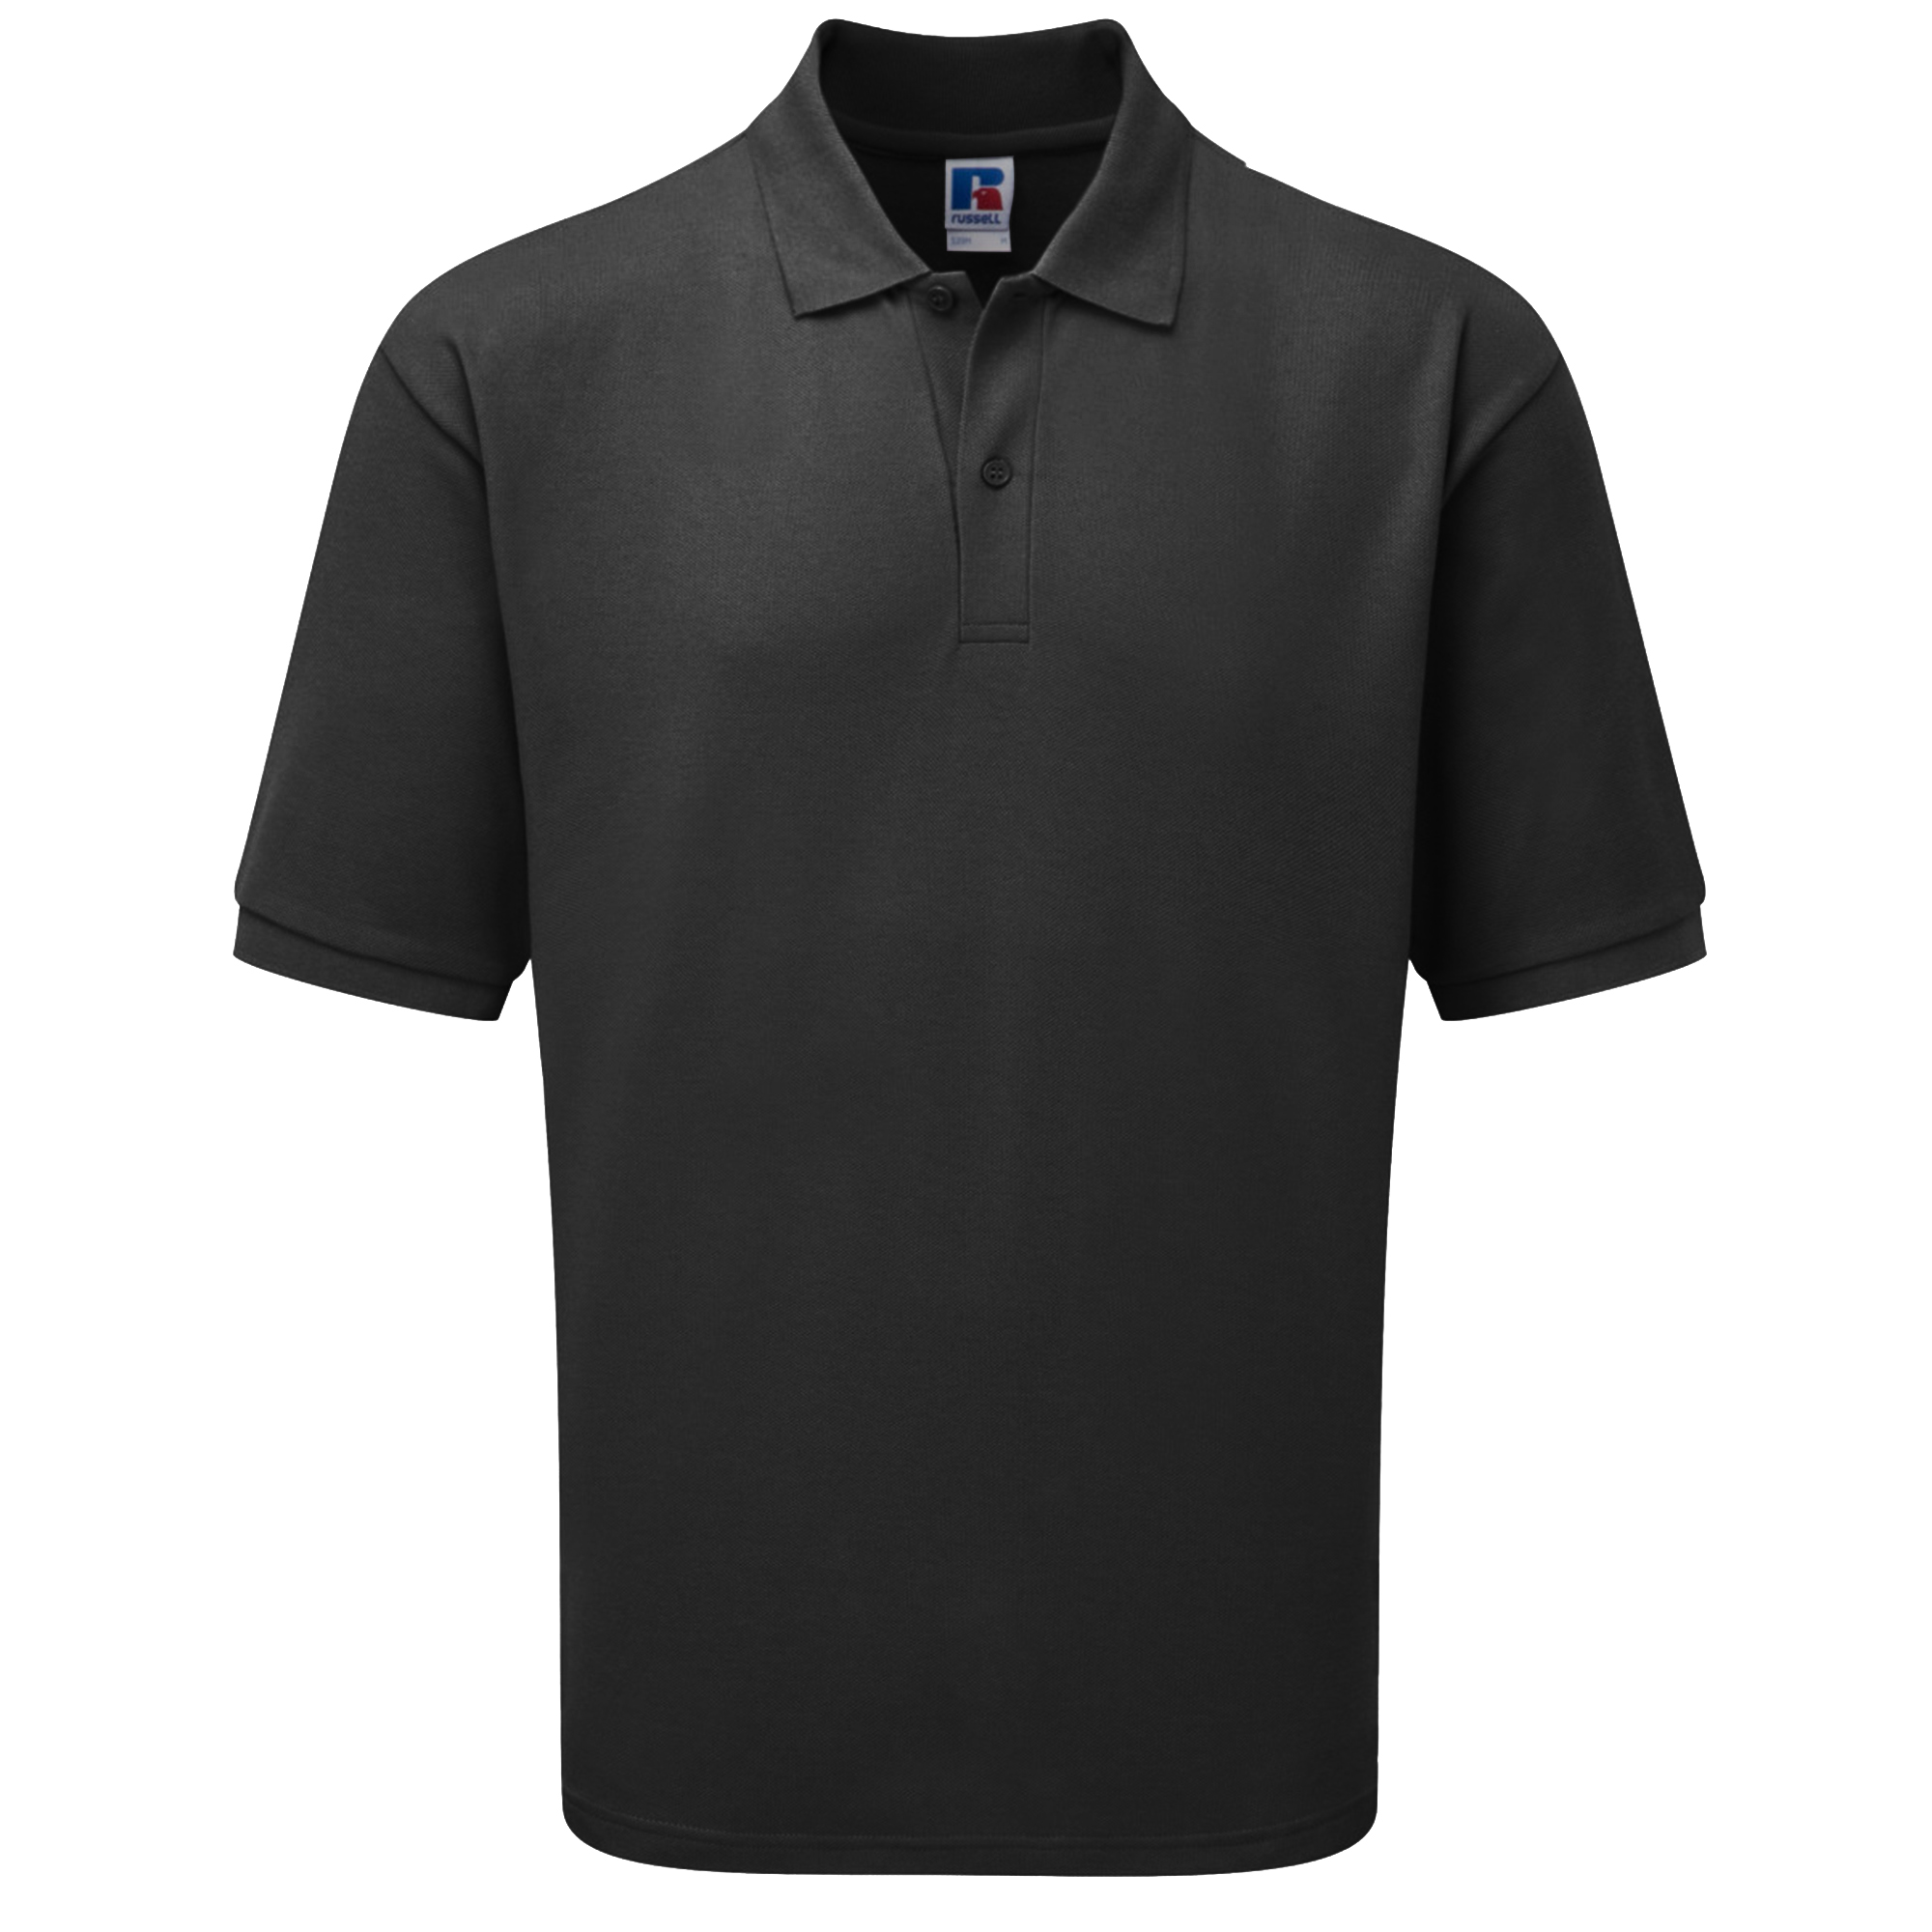 Russell Mens Classic Short Sleeve Polycotton Polo Shirt (3XL) (Light Oxford)